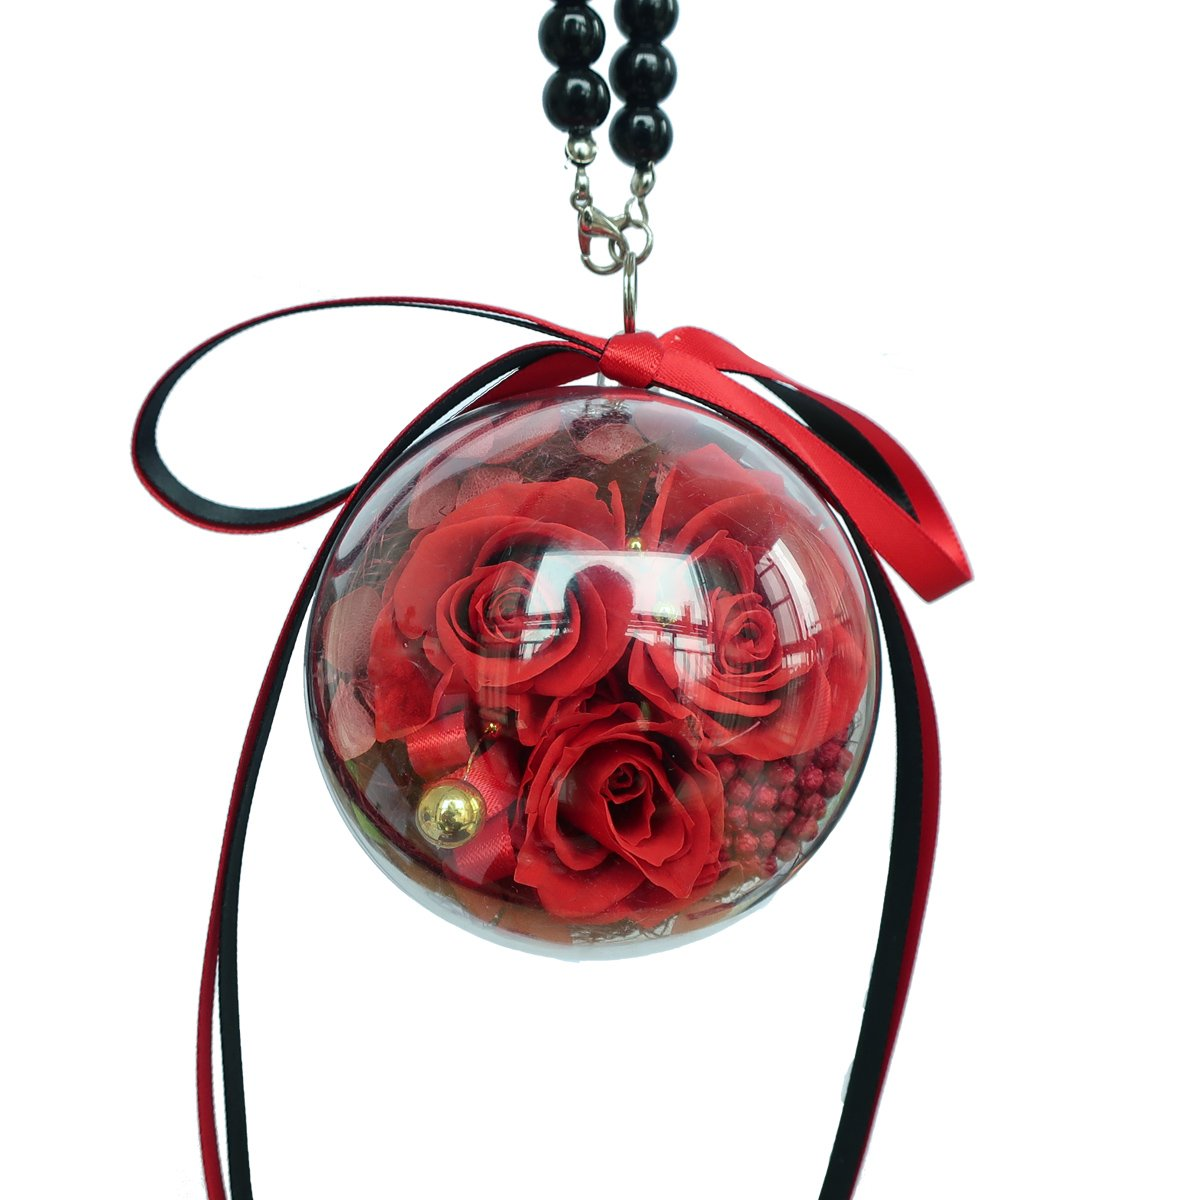 wishing rose Three red Preserved Real Roses in a Circular Acrylic Ball,with a Bead Necklace.which can be Used as a car Pendant, Wall Decoration, Decor Woman's Handbag. is a for Her, Sister, Girls, A